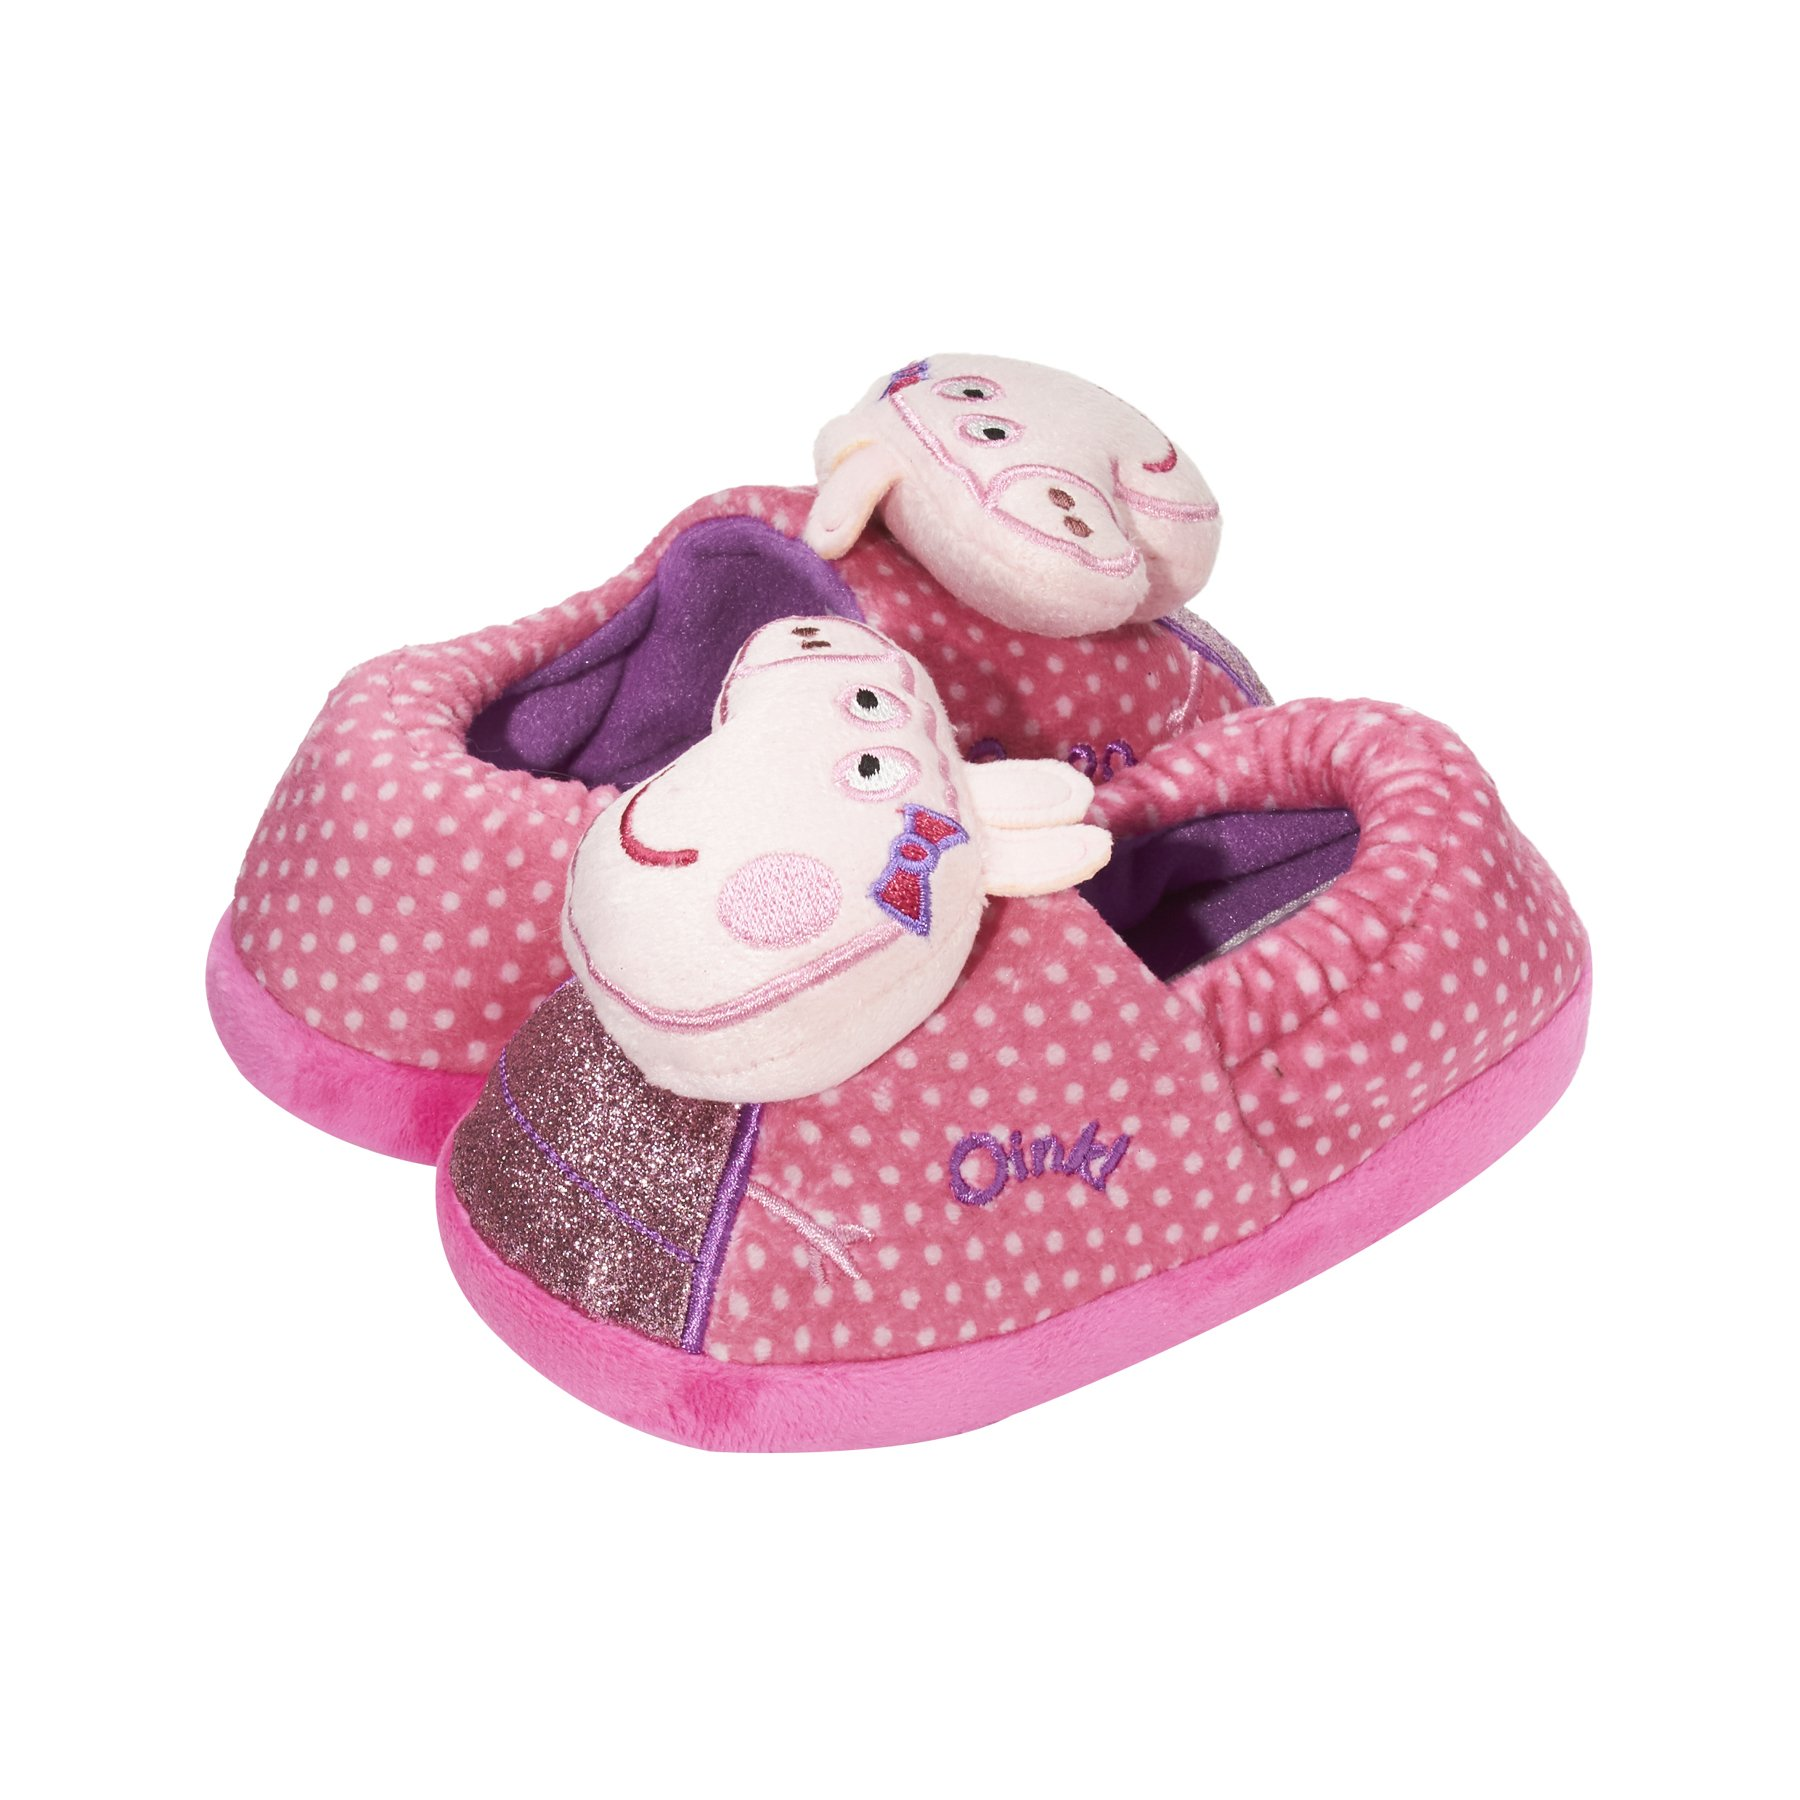 Peppa Pig Kids Toddler Girls Shimmer & Polka Dot Audio Slippers Pink Small